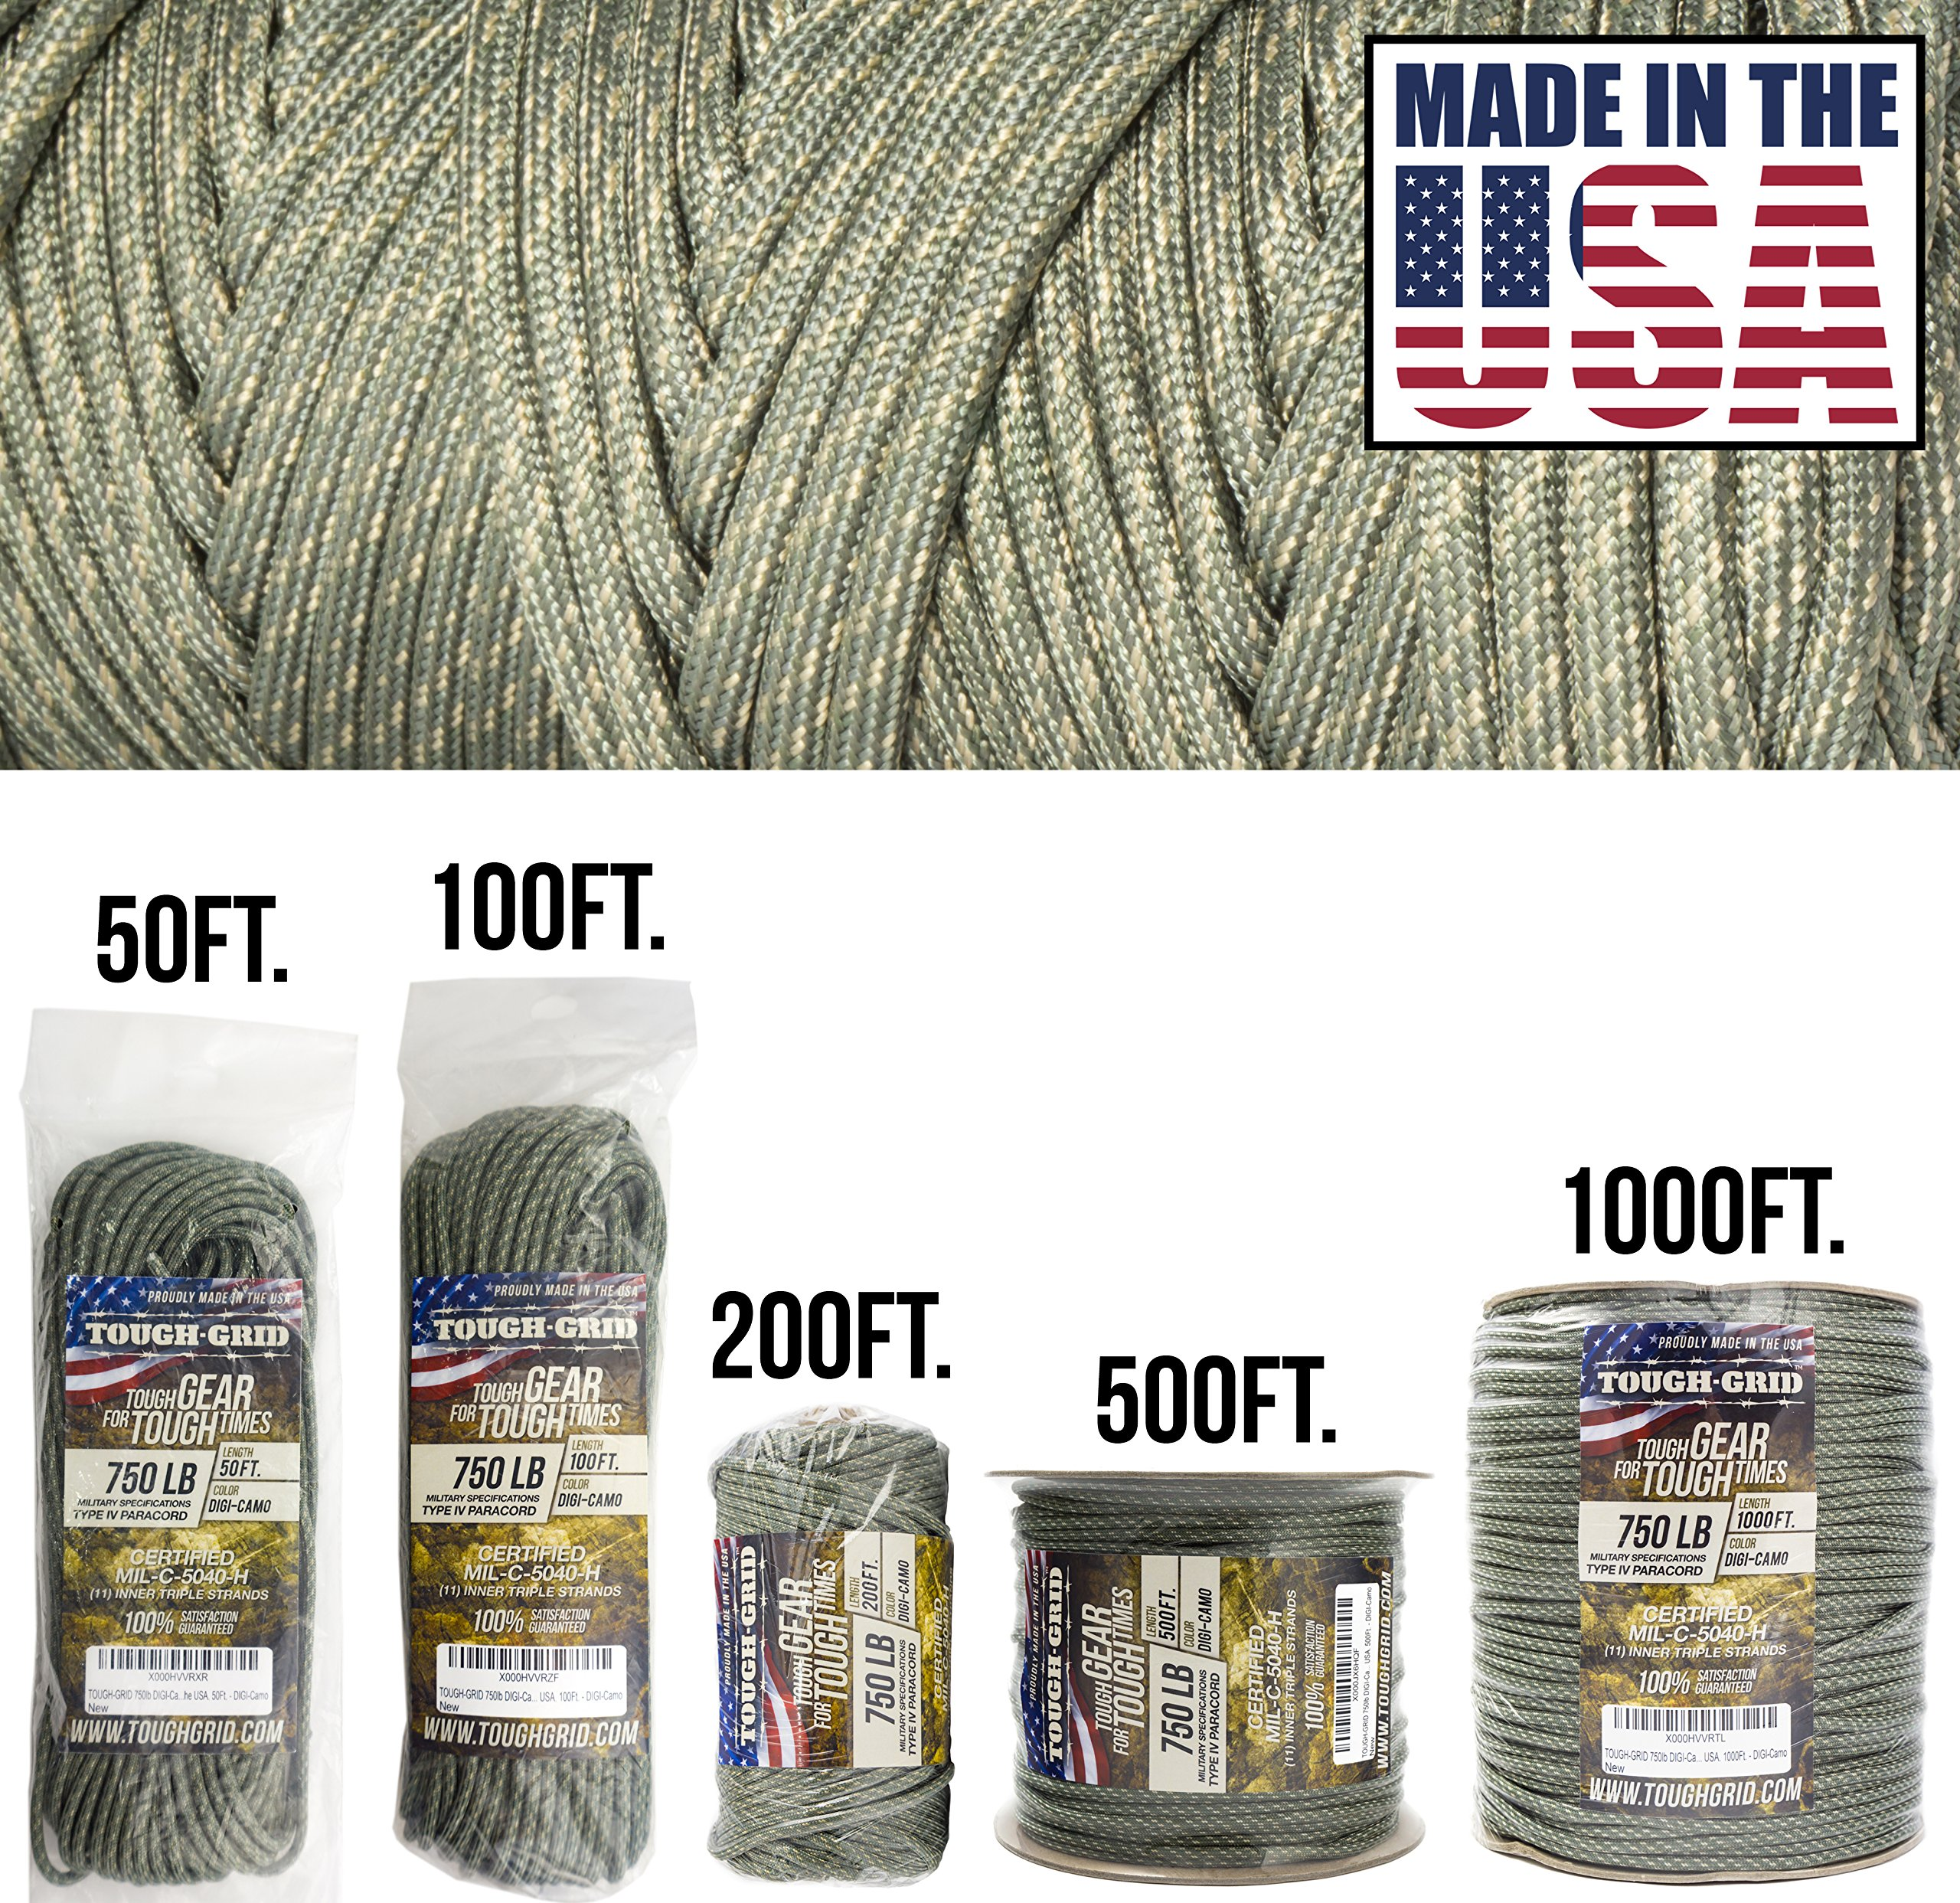 TOUGH-GRID 750lb DIGI-Camo Paracord/Parachute Cord - Genuine Mil Spec Type IV 750lb Paracord Used by The US Military (MIl-C-5040-H) - 100% Nylon - Made in The USA. 100Ft. - DIGI-Camo